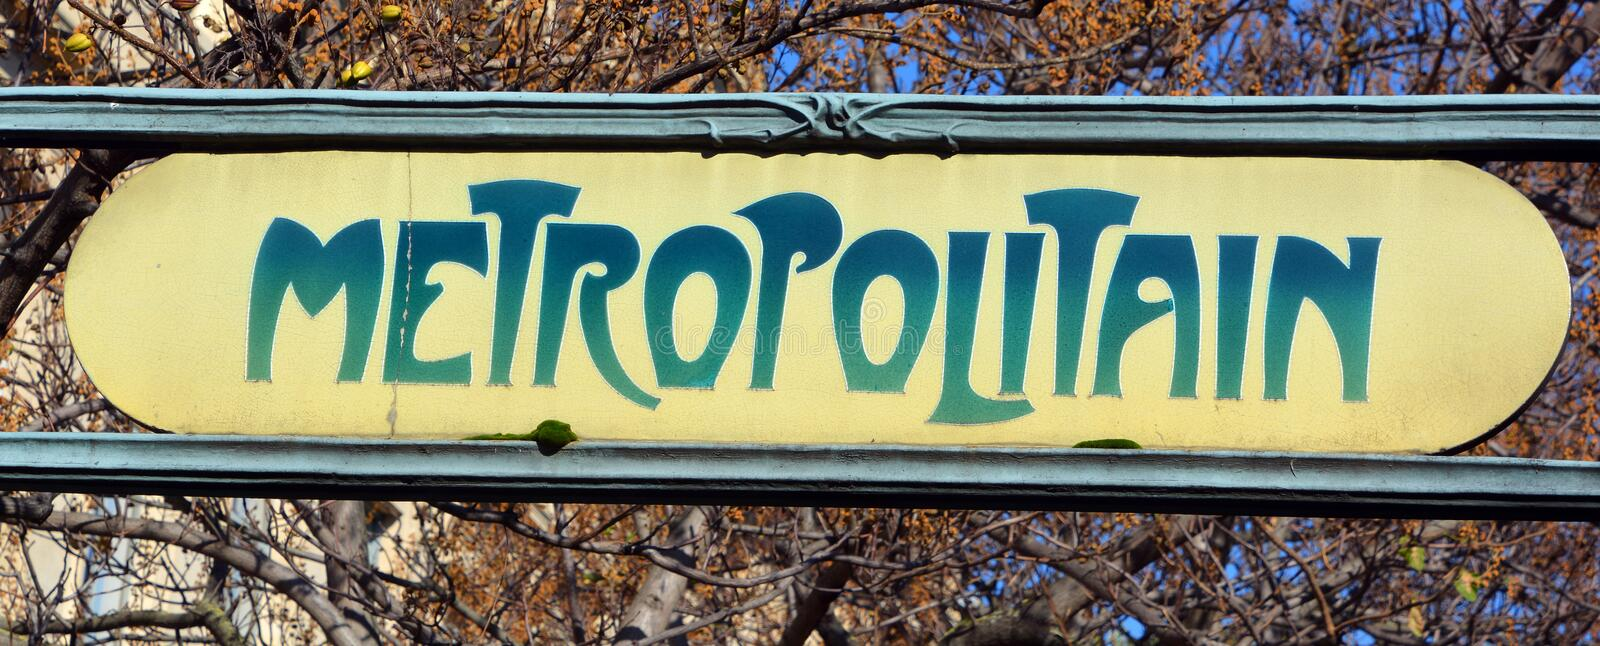 Famous historic Art Nouveau entrance sign. PARIS FRANCE OCTOBER 15, 2014: Famous historic Art Nouveau entrance sign for the Metropolitain underground railway royalty free stock photography